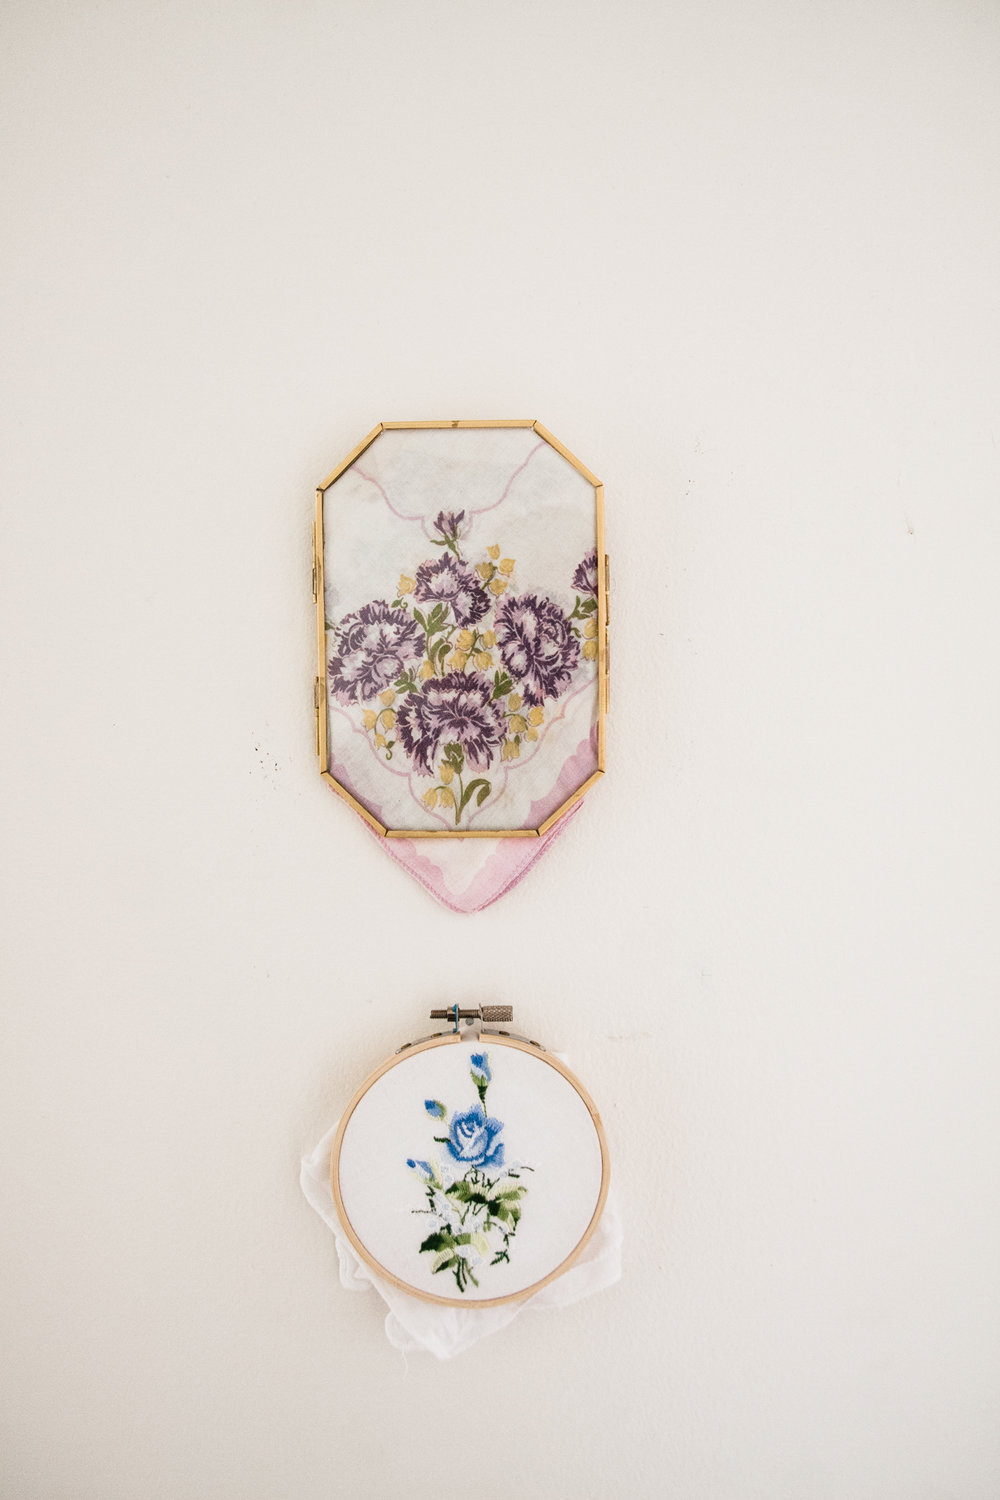 Emily framed her grandmother's handkerchiefs and displays them in her hallway.